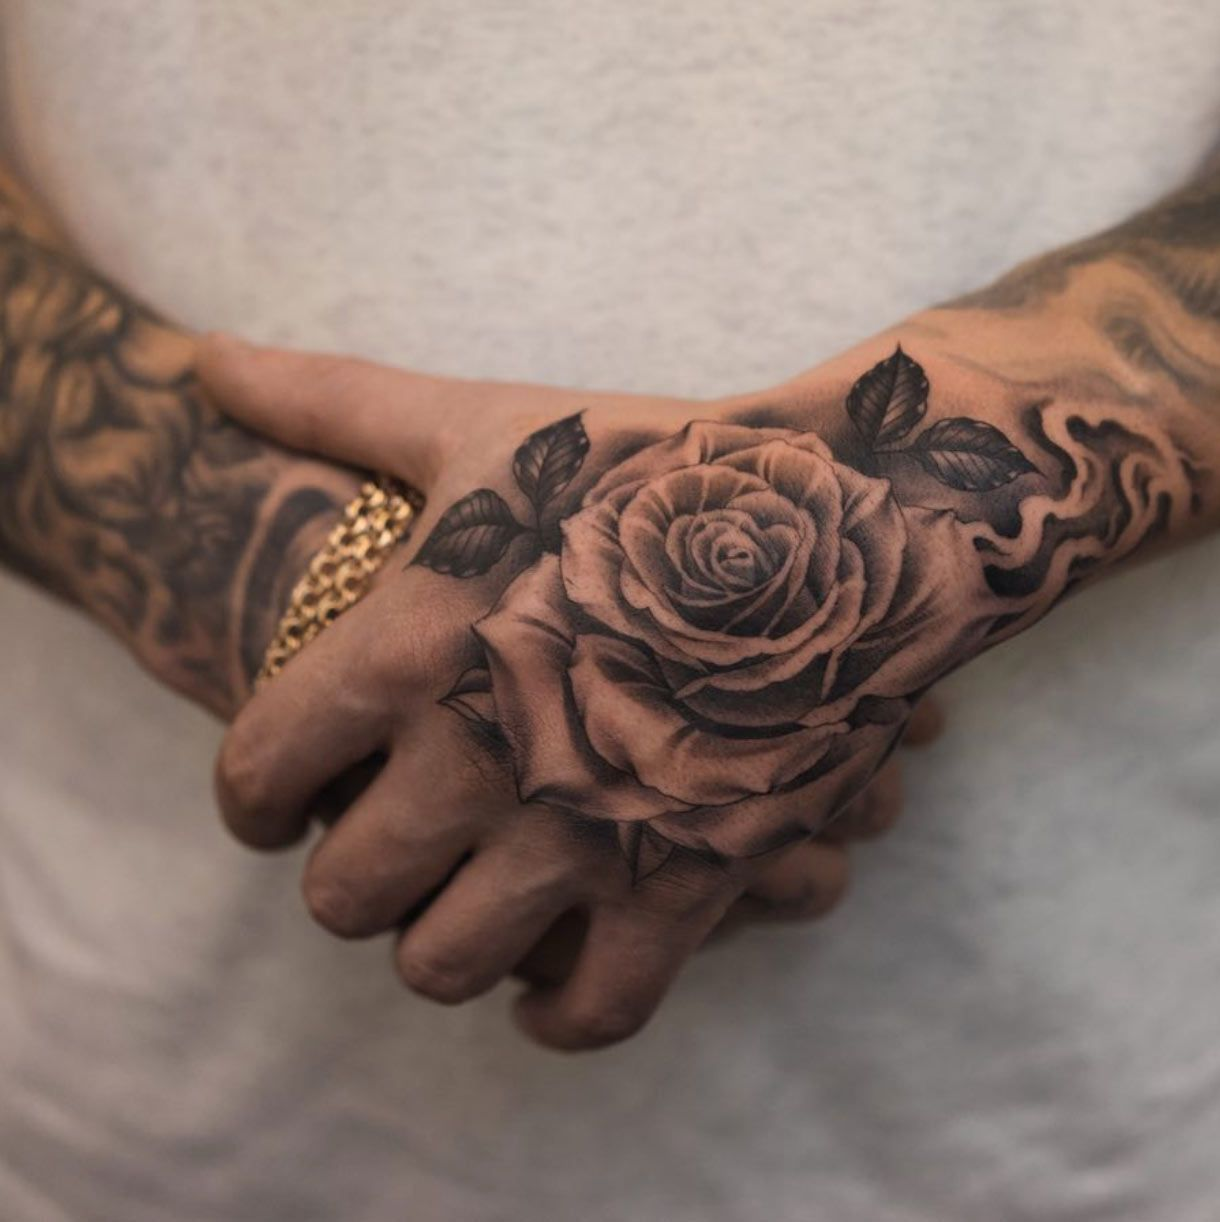 How to Take Care of Your New Tattoo (With images) Hand